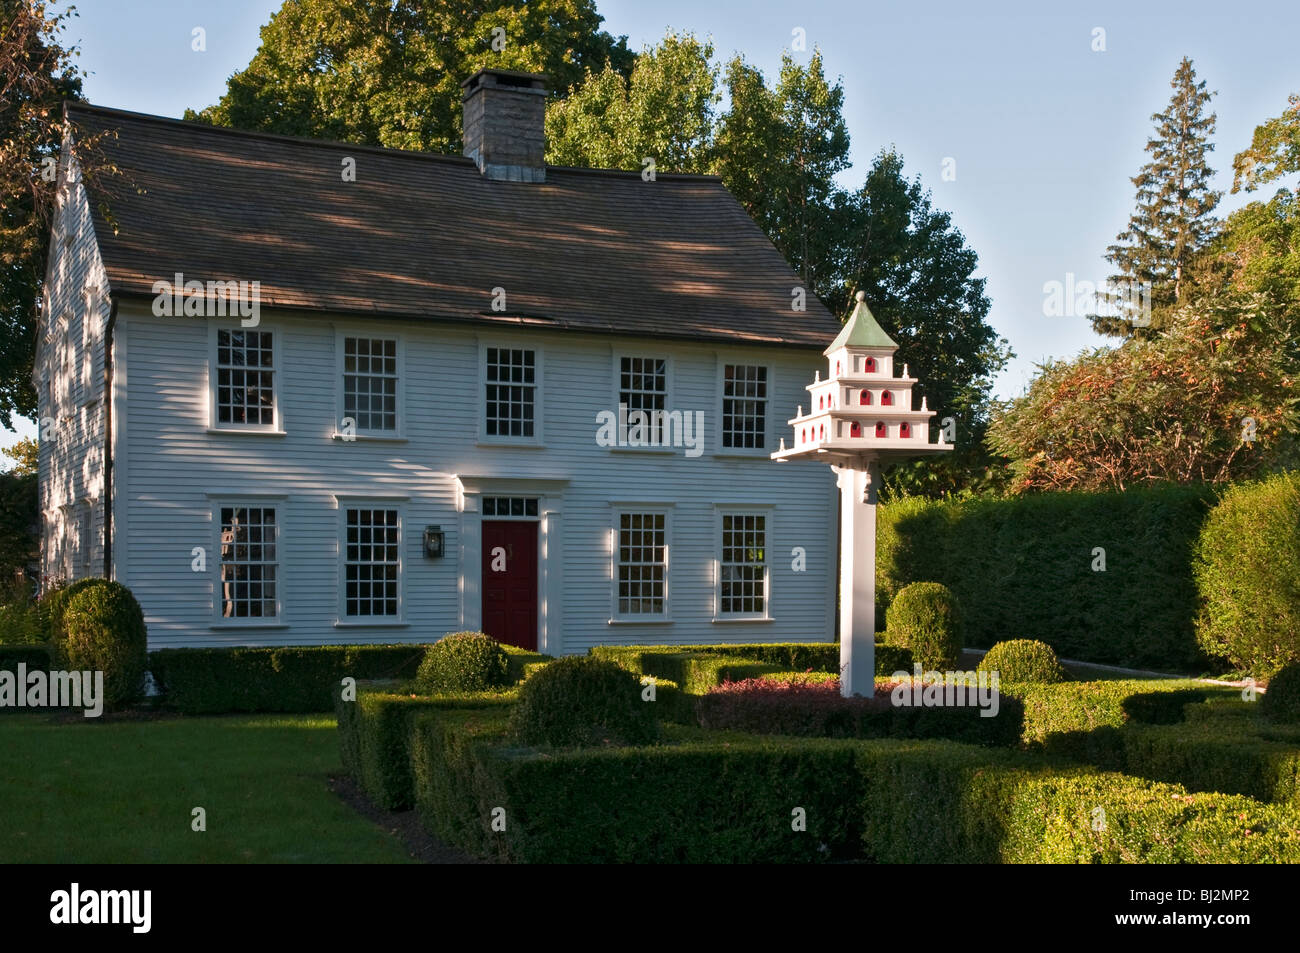 Connecticut Essex private residence with elaborate birdhouse - Stock Image